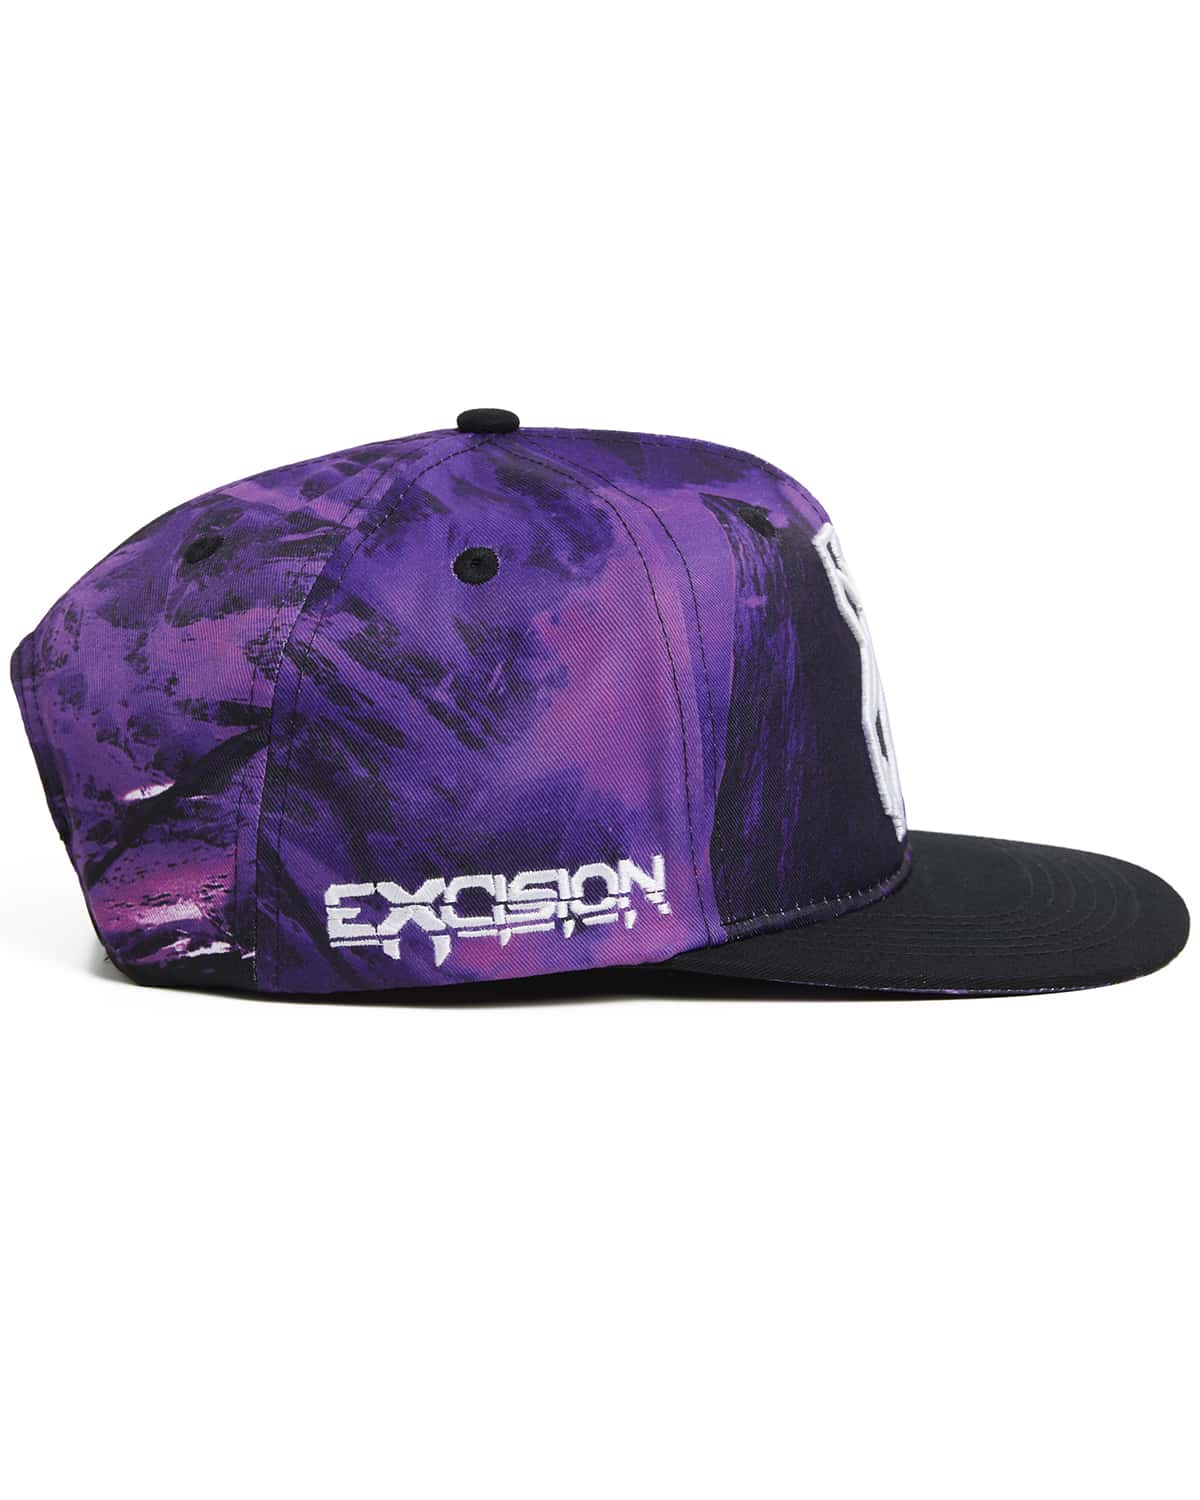 'Apex' Snapback - Black/Purple